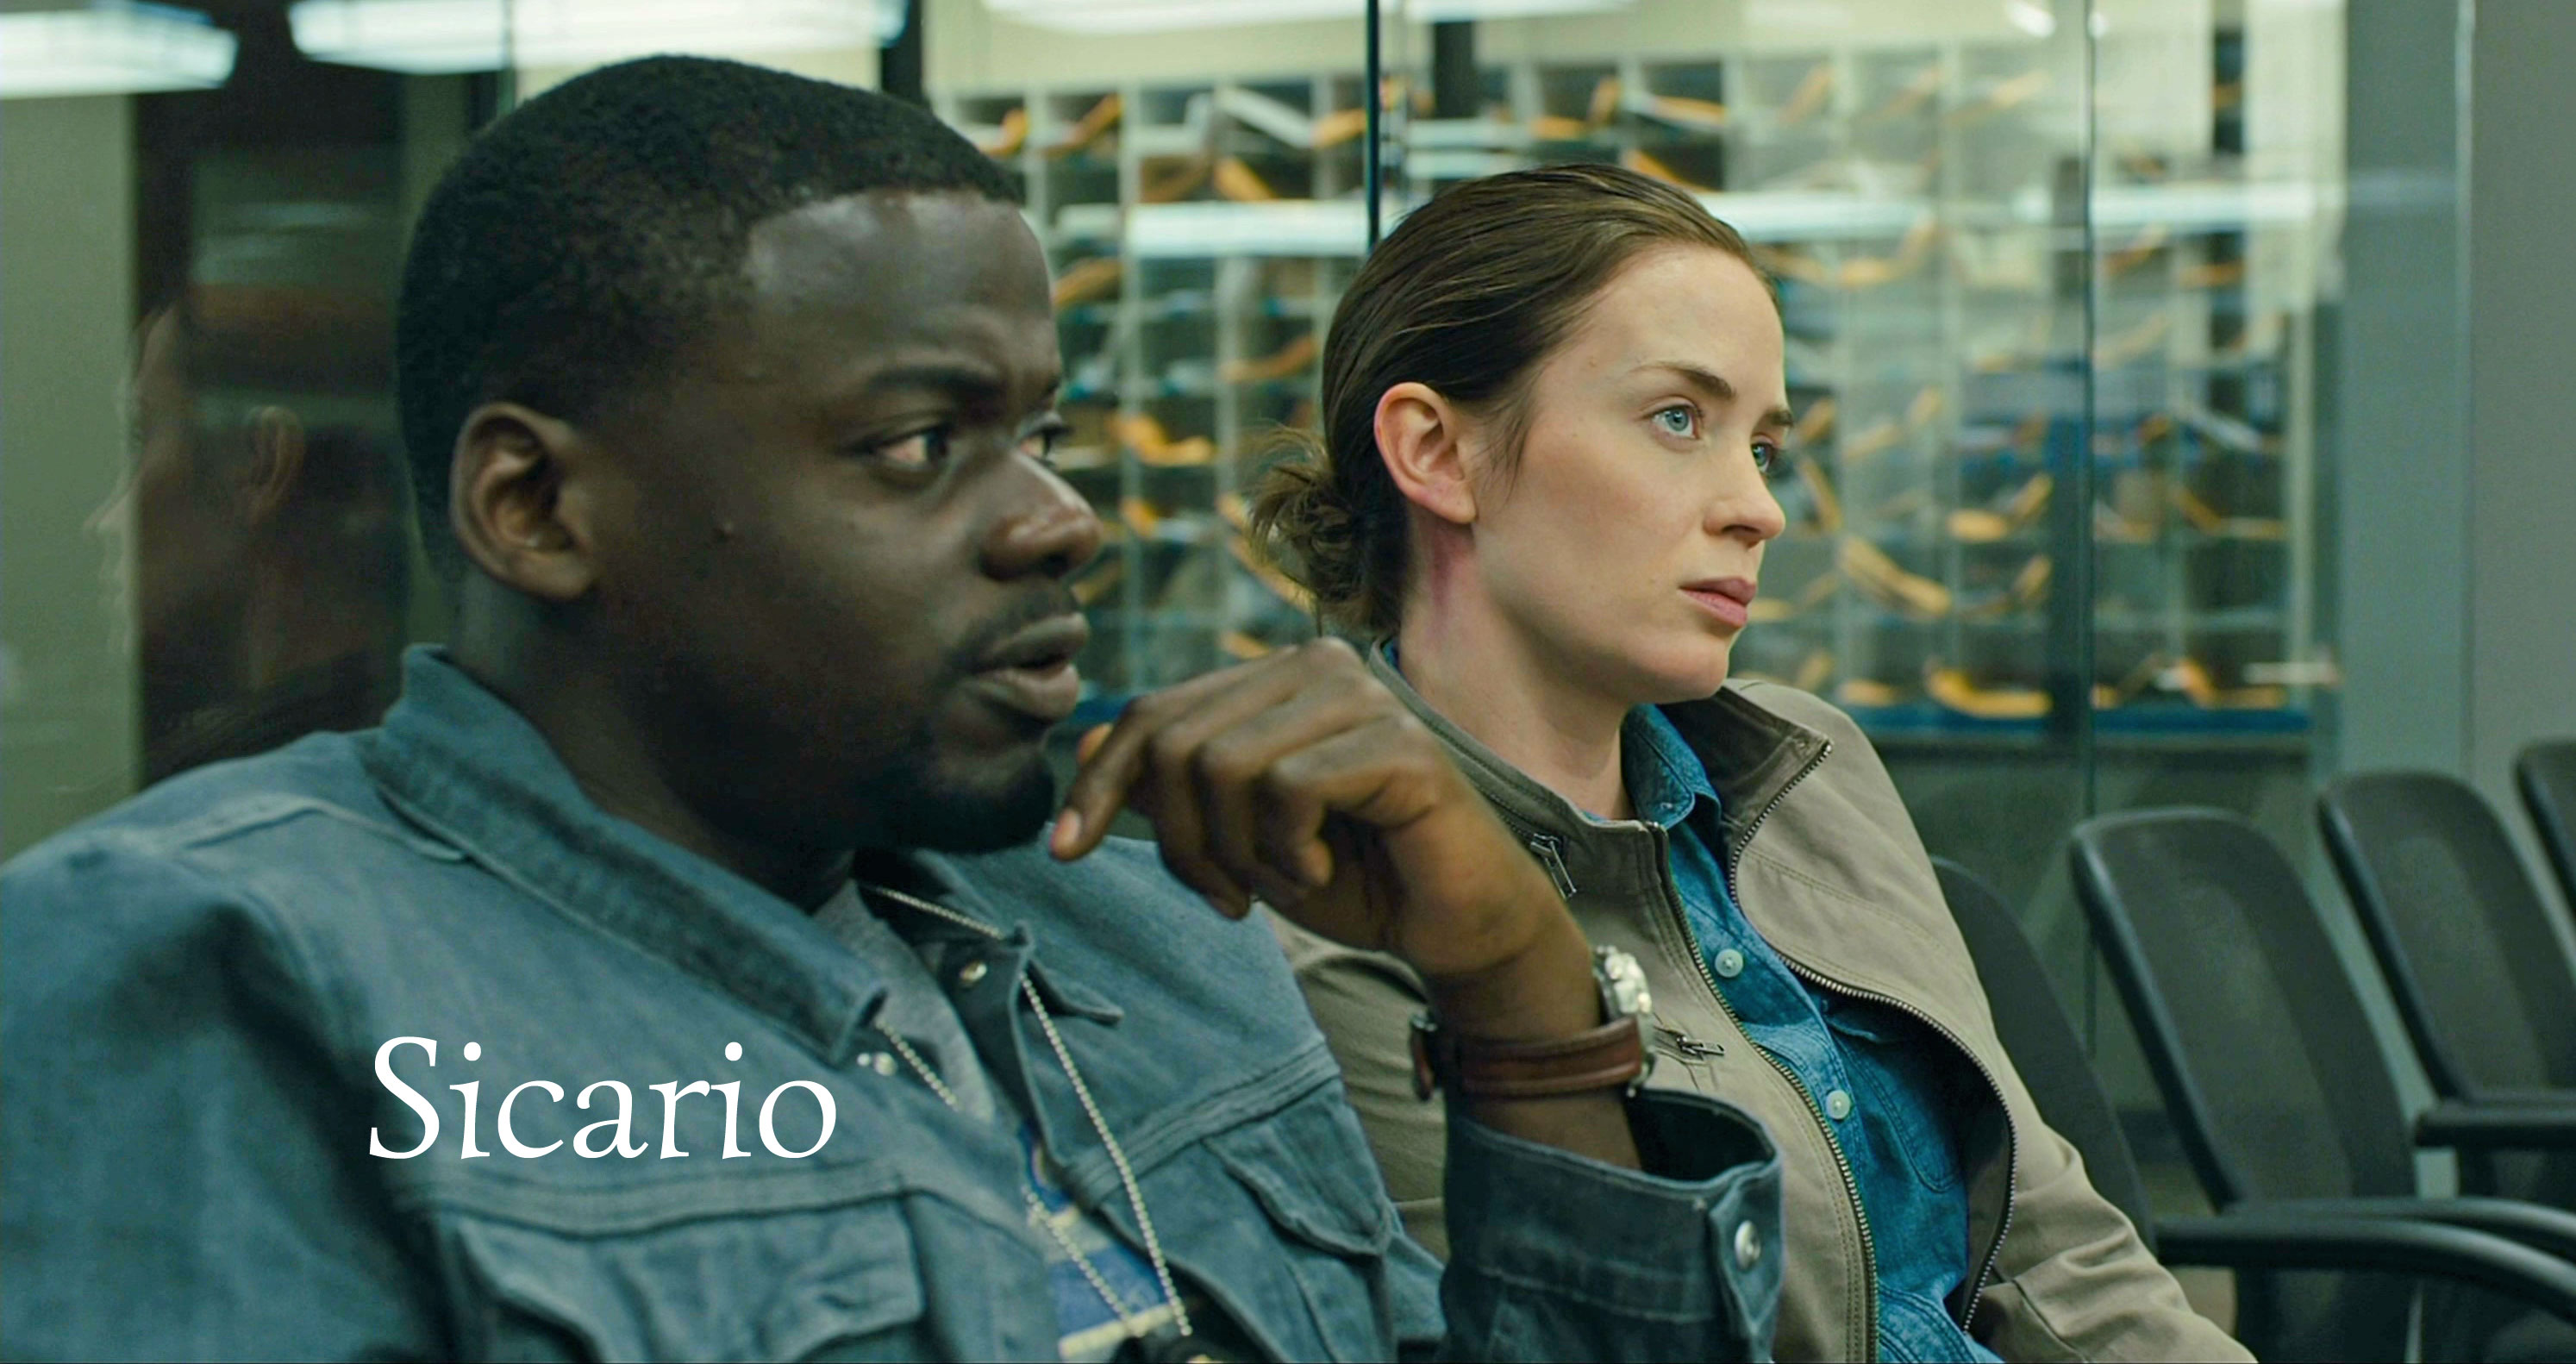 Sicario 2015 - Task Force | Book Addicts